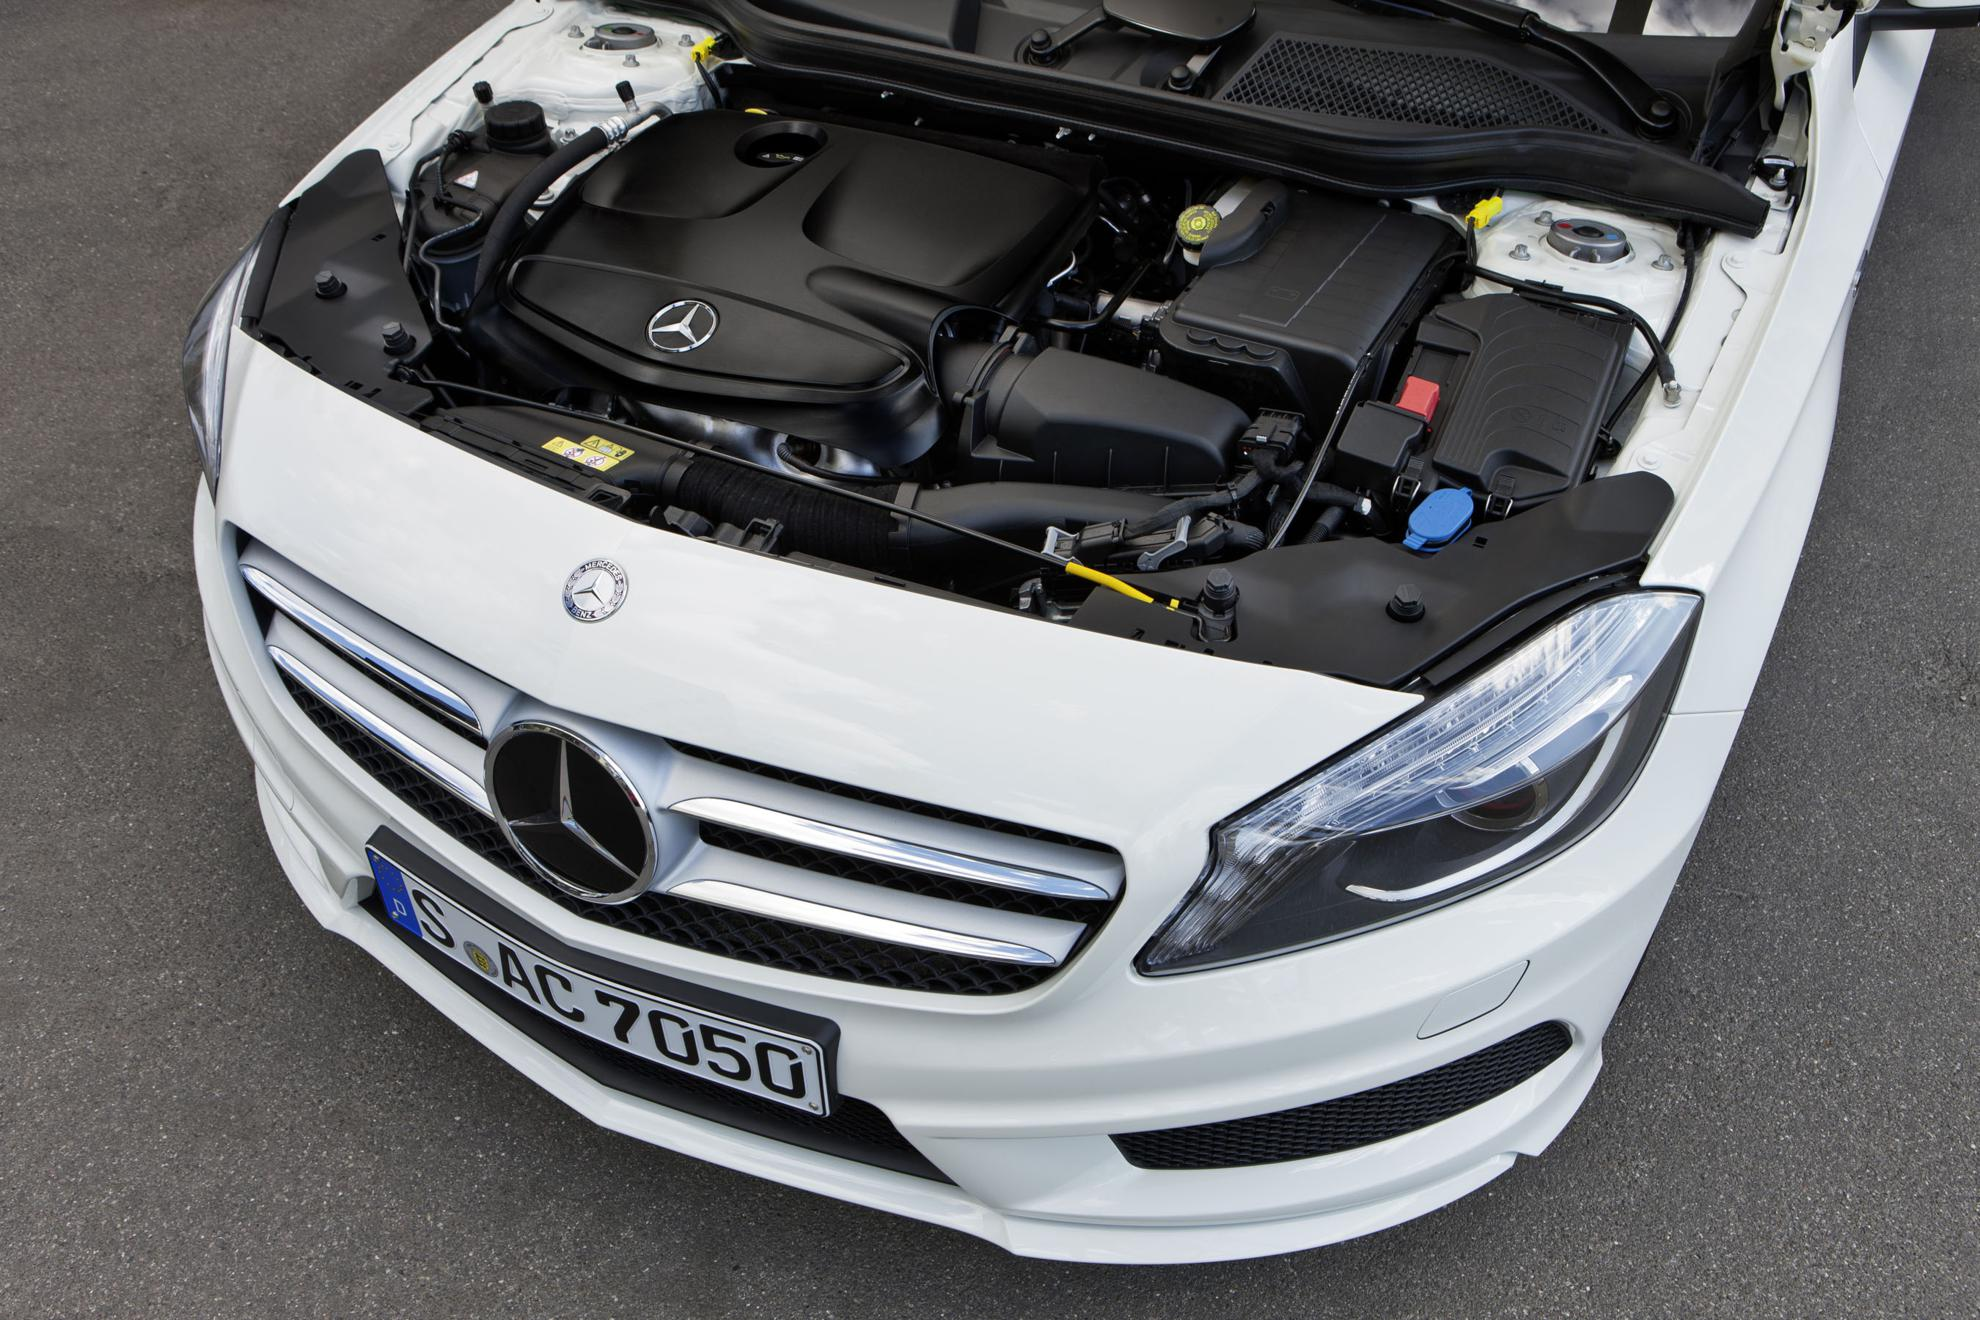 Mercedes Benz A Class Technical Specifications